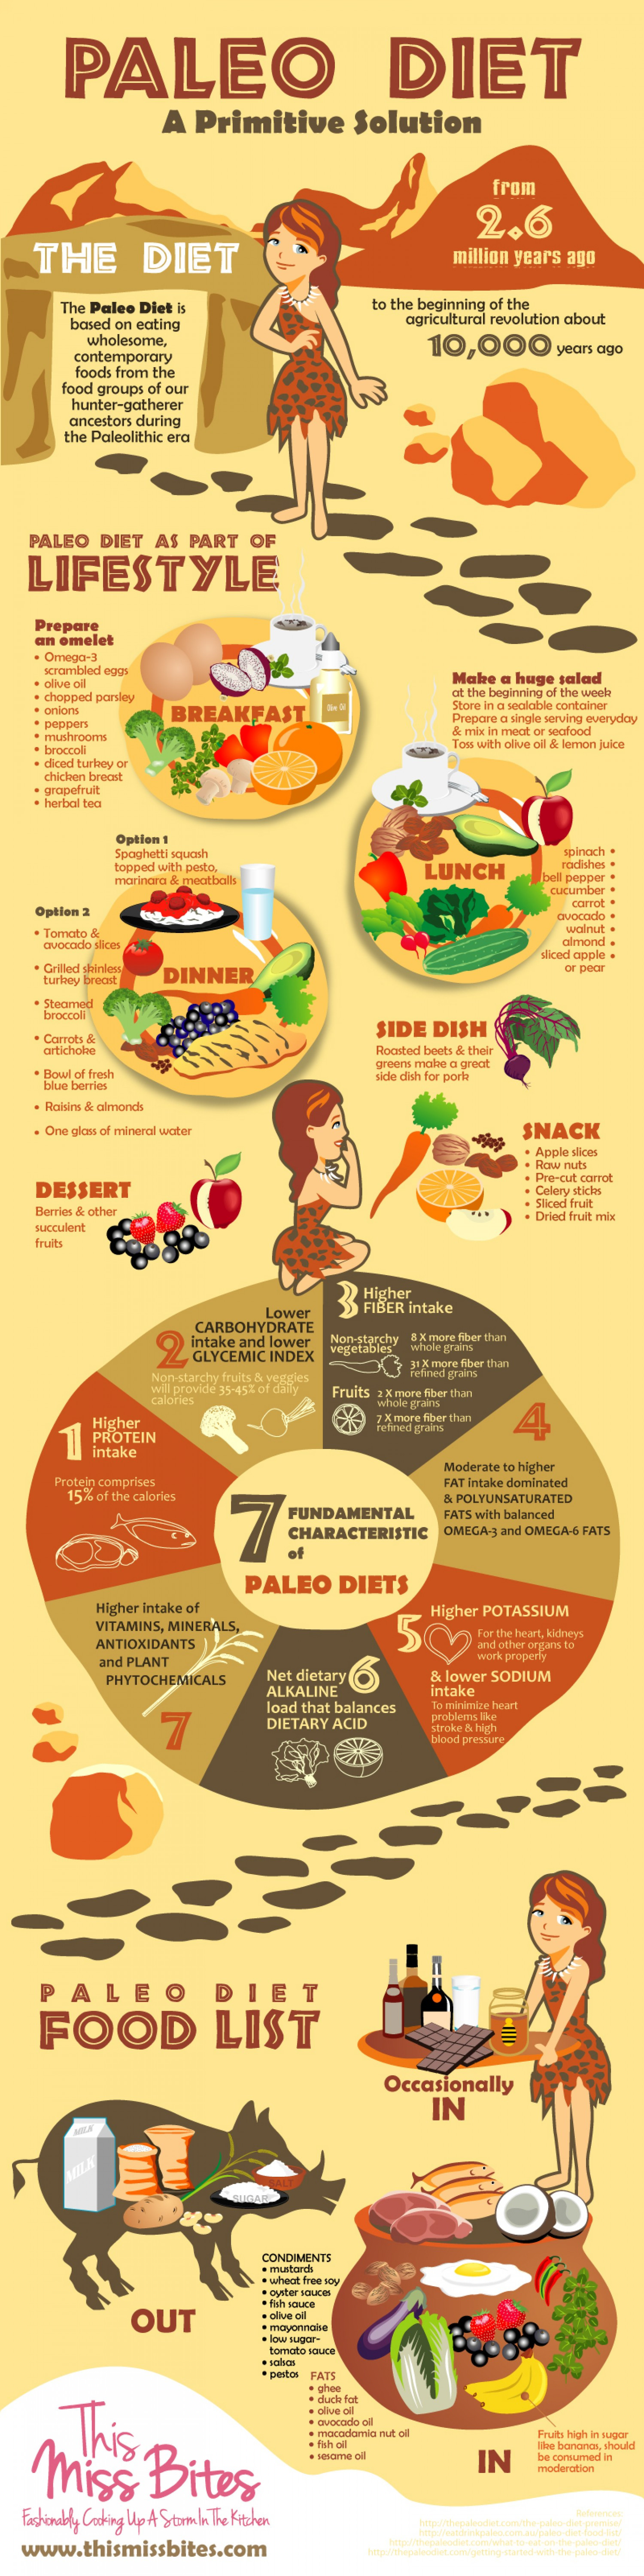 Is Paleo Diet Healthy  Paleolithic Diet Paleo Diet Plan For Beginners [Infographic]